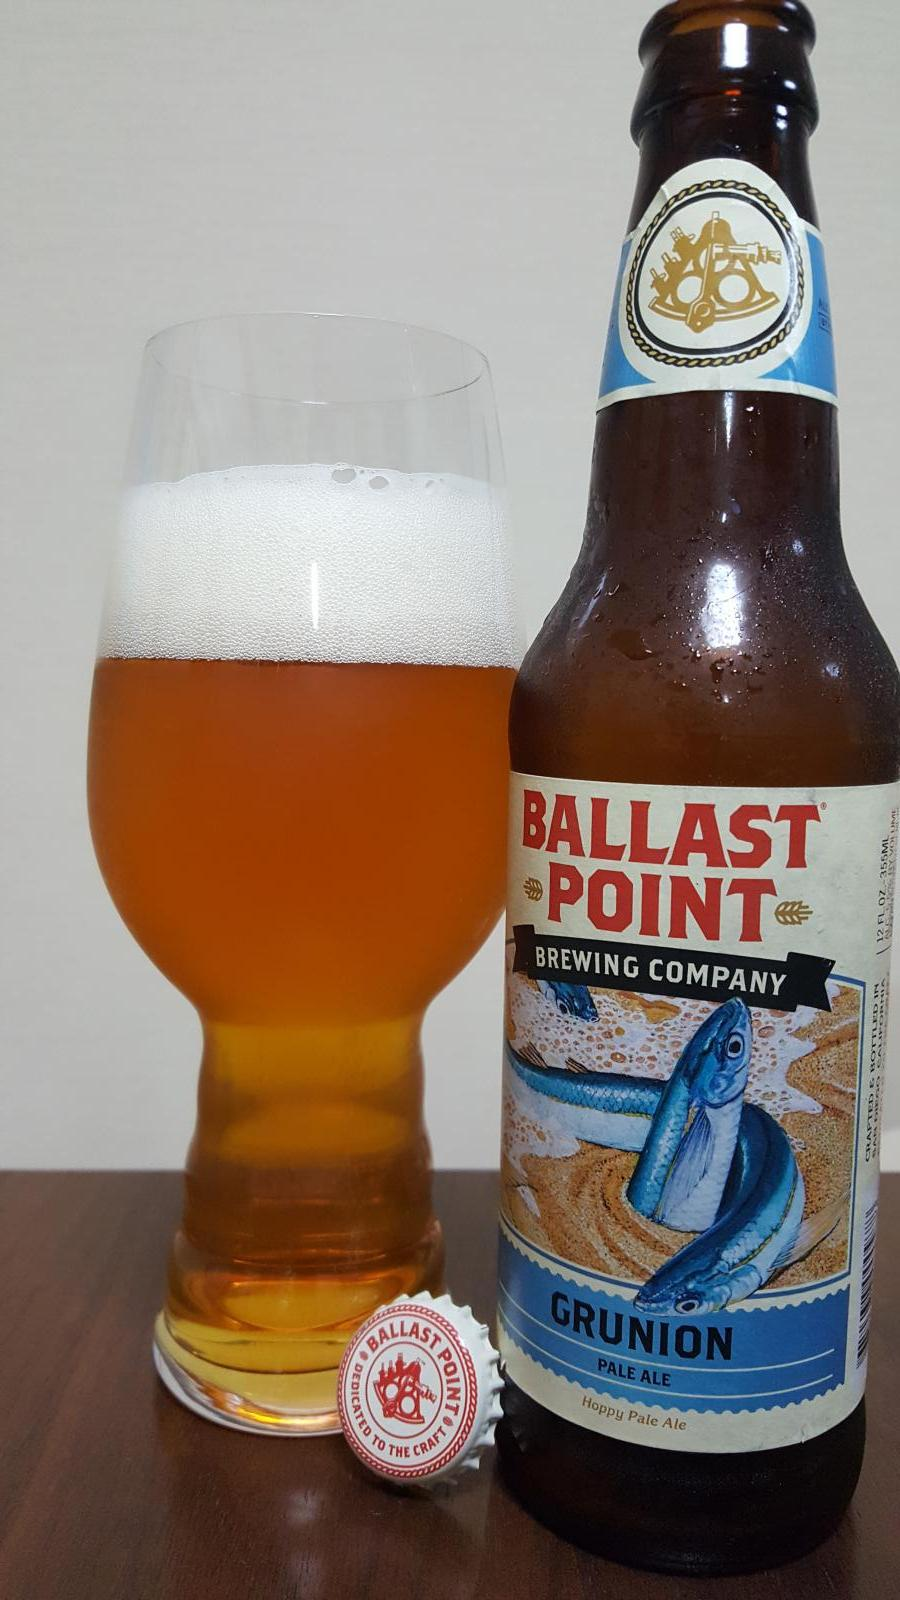 Grunion Pale Ale